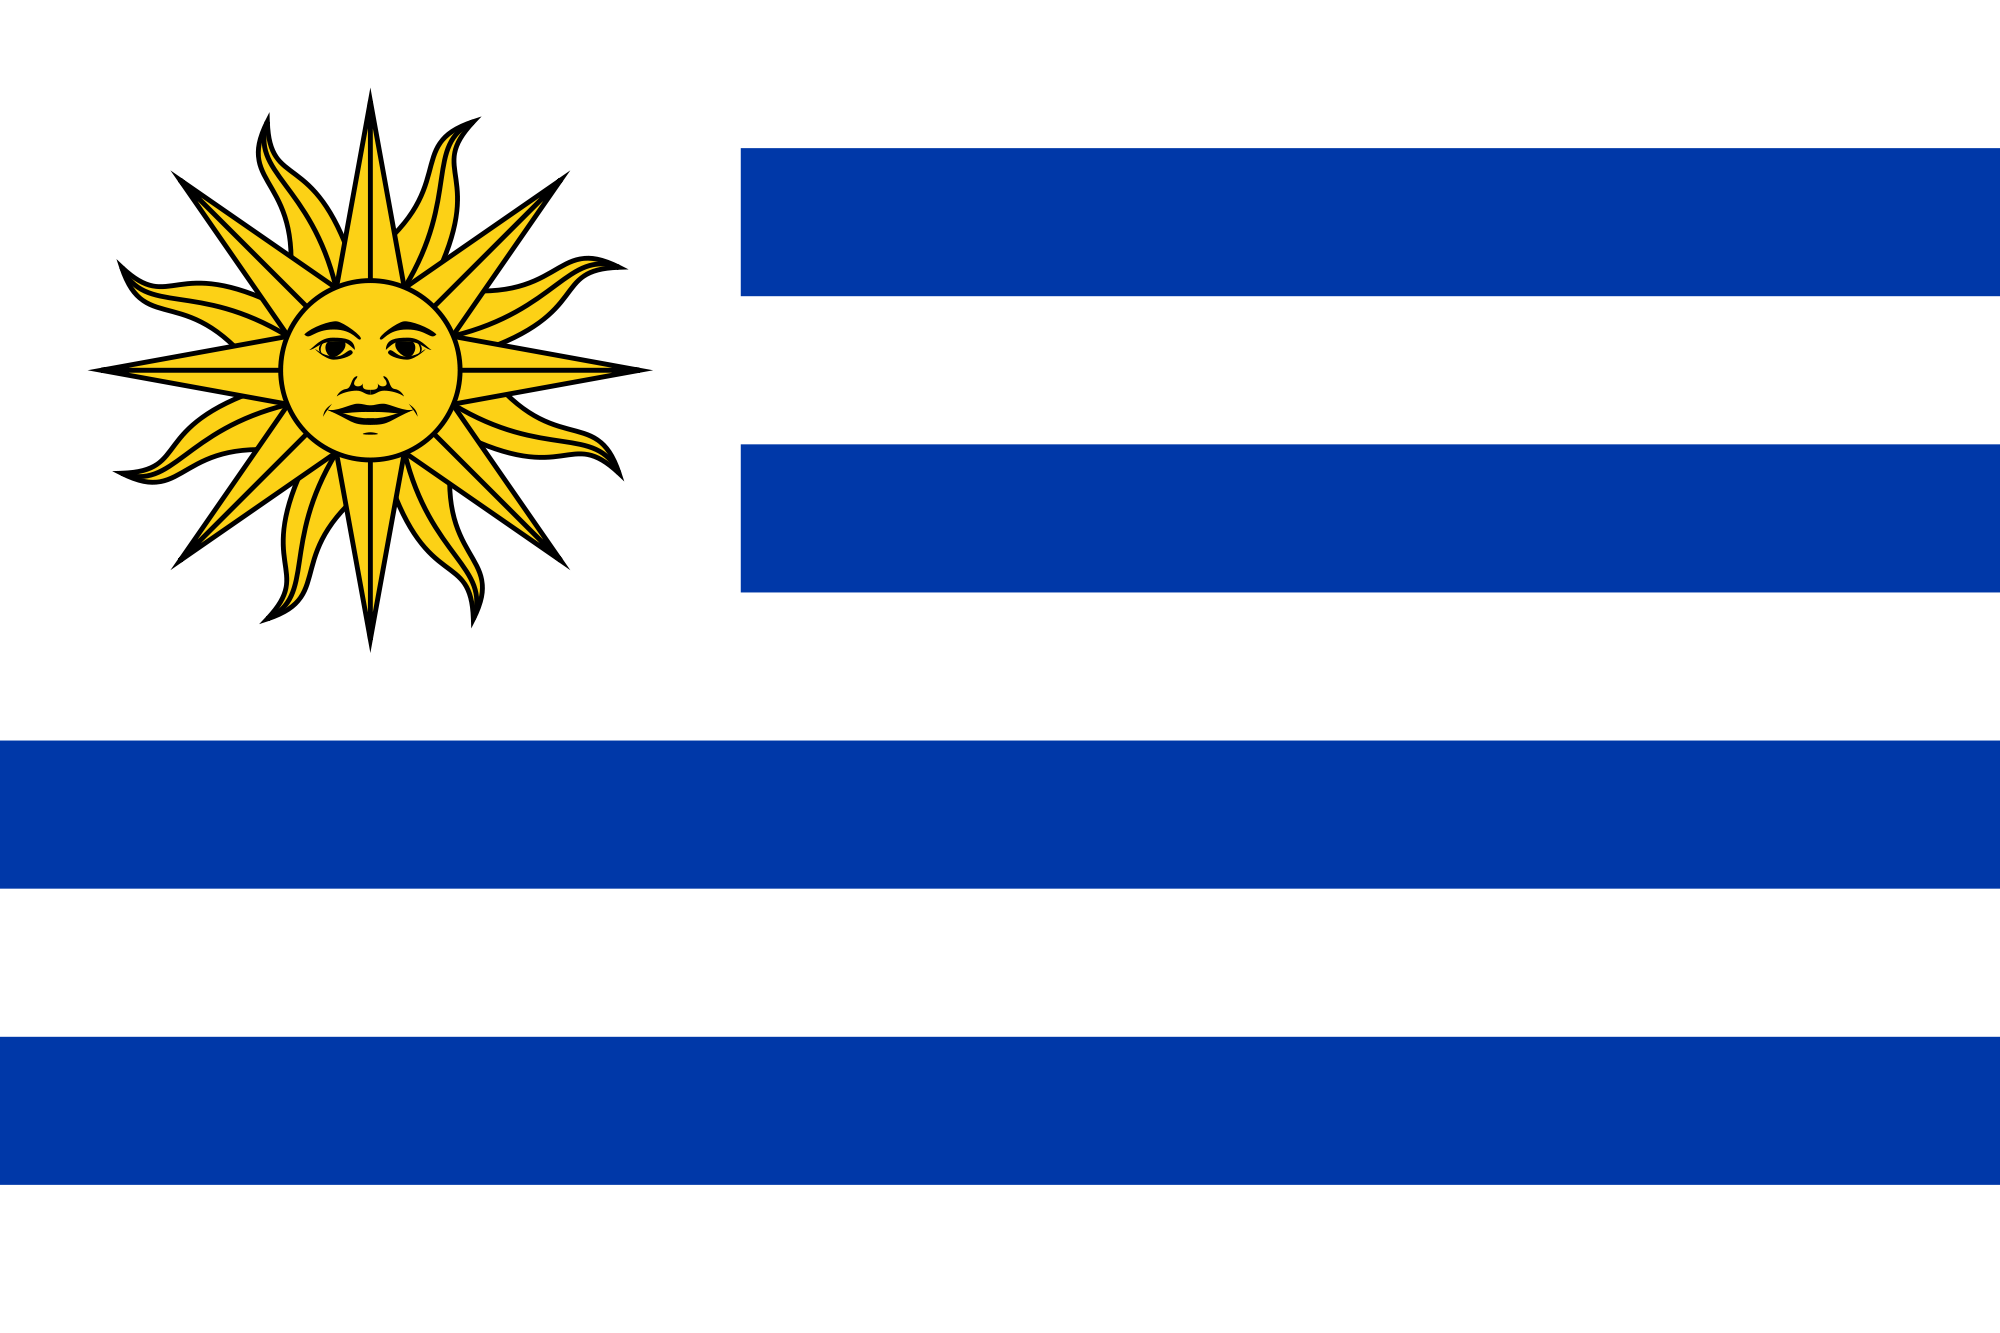 Intellectual property in Uruguai - trademarks and patents - Uruguai